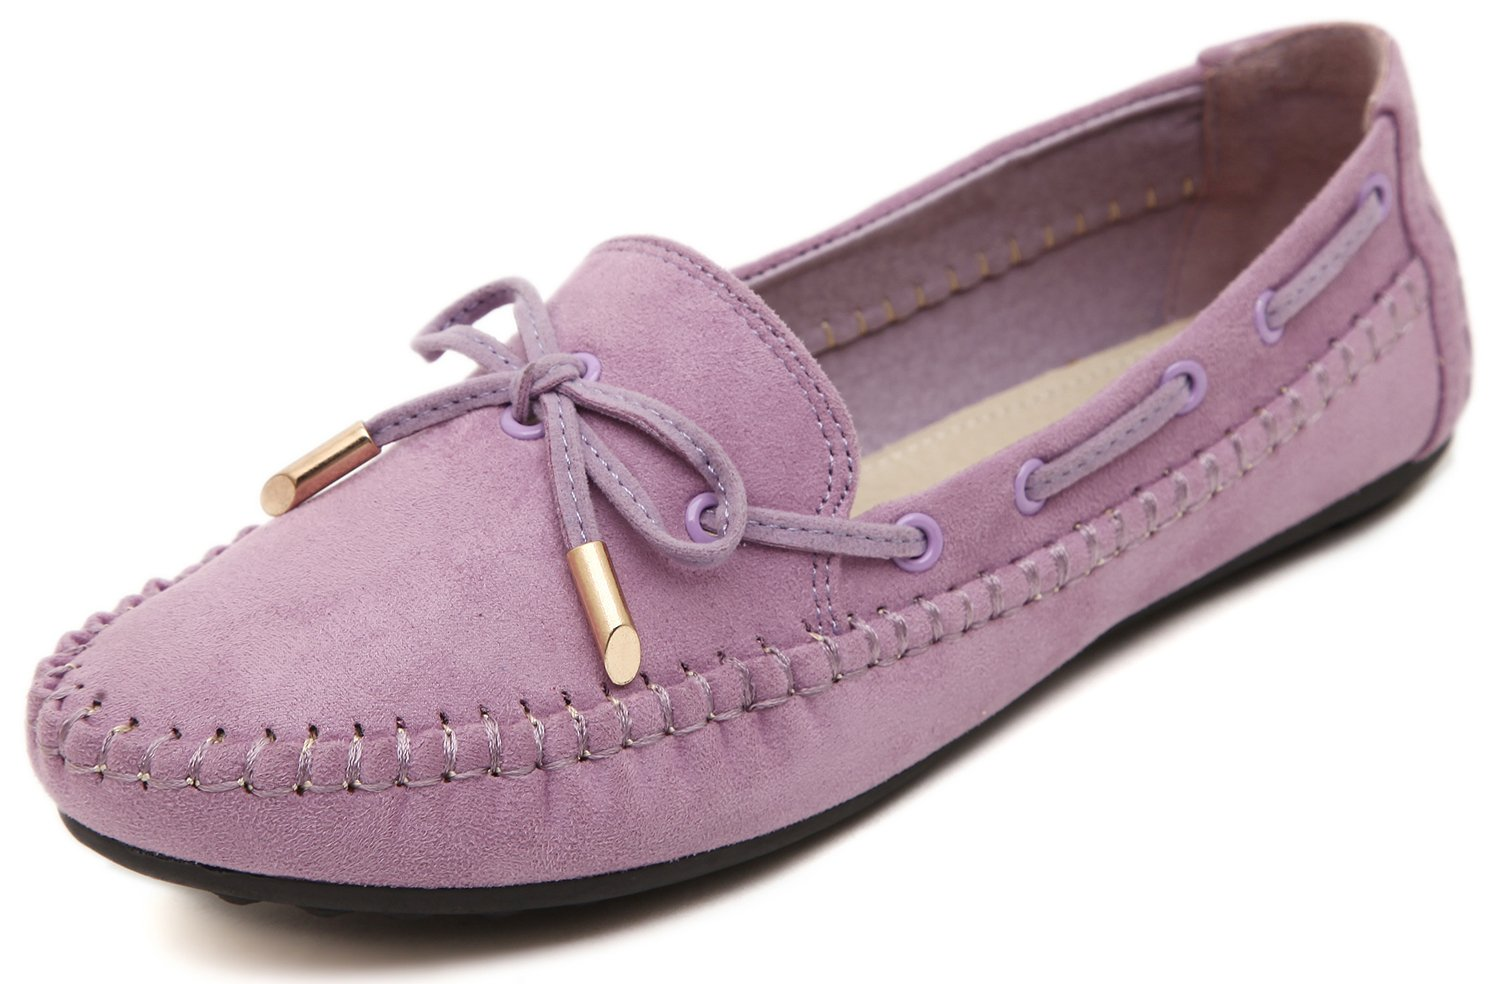 Women's Casual Velvet Flat Loafers, Lilac Suede Gold Pendant Lace Low Top Comfy Bows, Anti-Slip Rubber Outsole with Memory Feet Support Insole Sneakers Prime Chic Moccasin Shoes